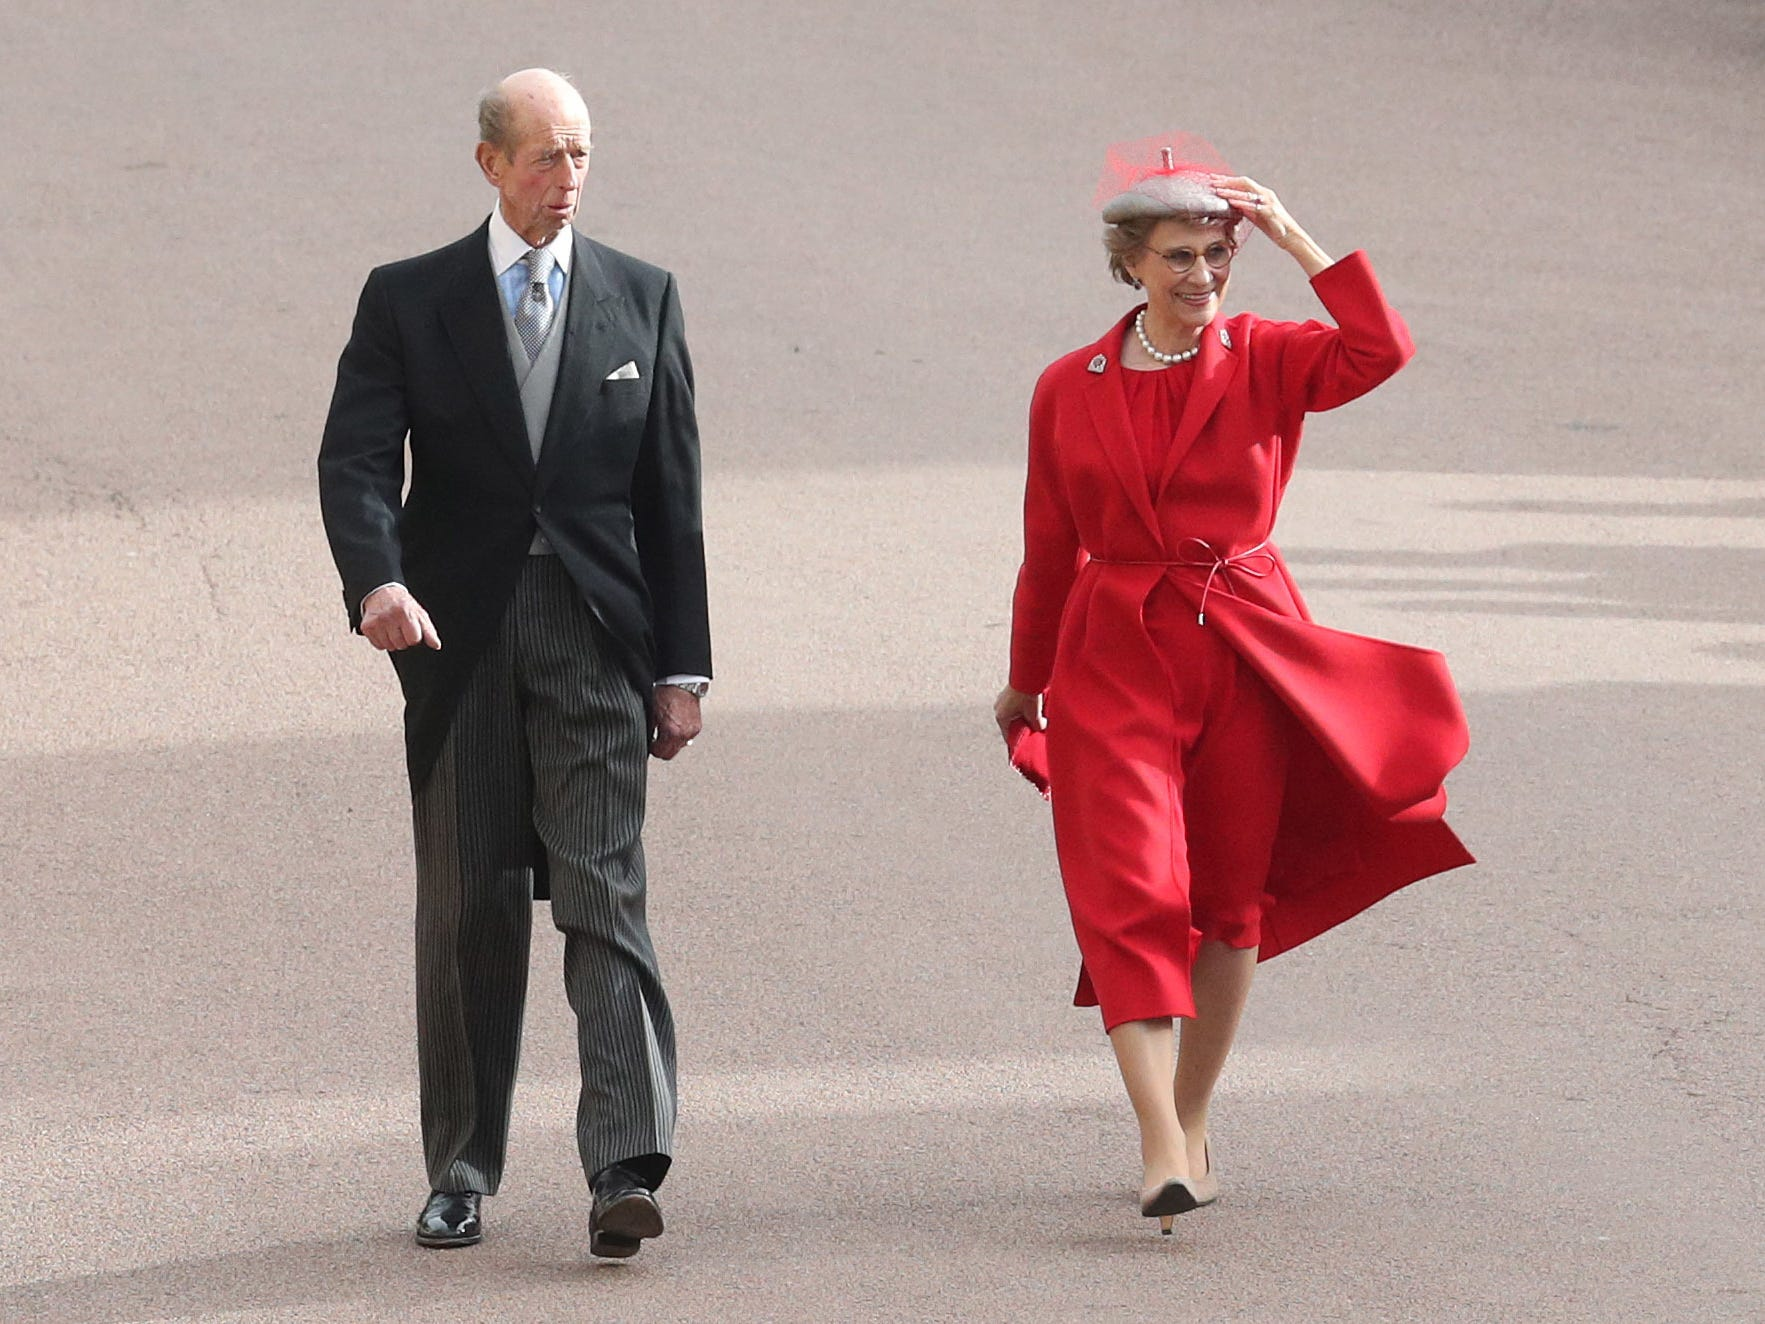 Prince Edward, Duke of Kent and Katharine, Duchess of Kent.